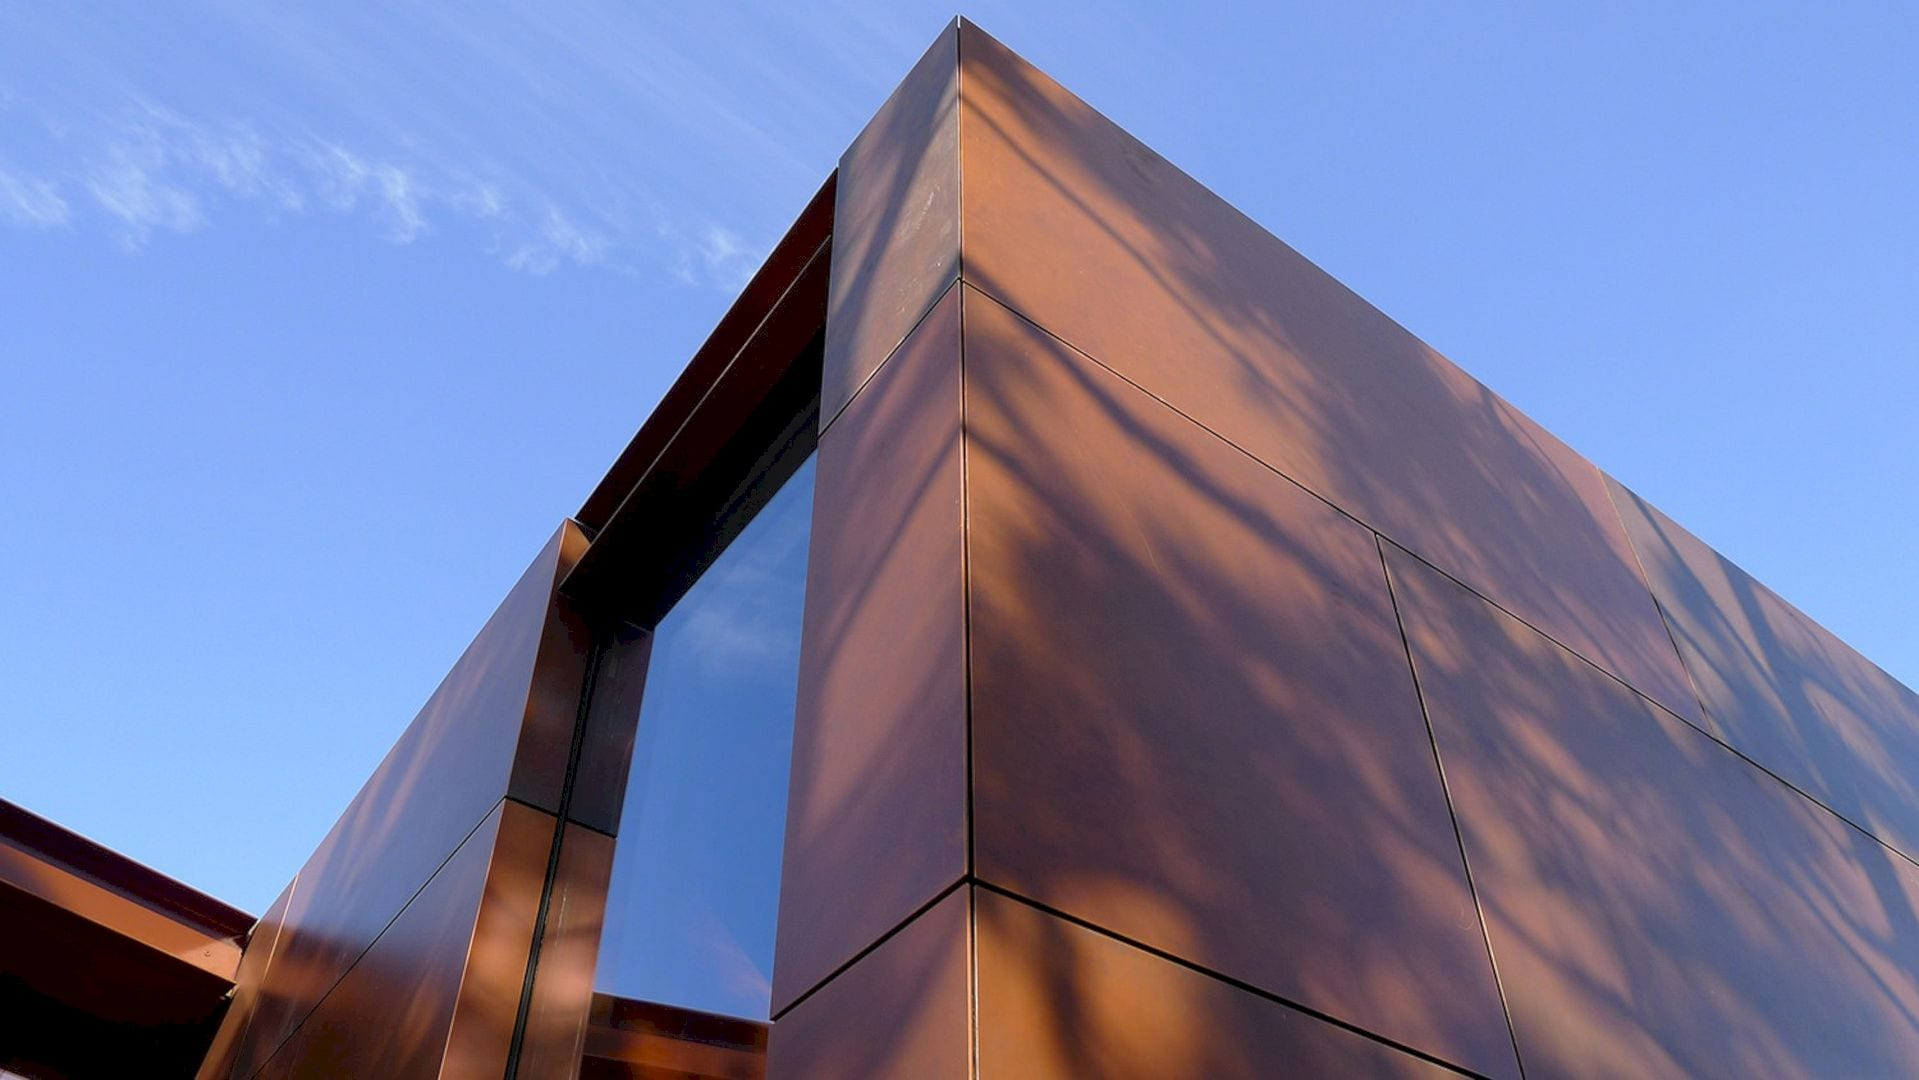 Daeyang Gallery And House By Steven Holl Architects 3